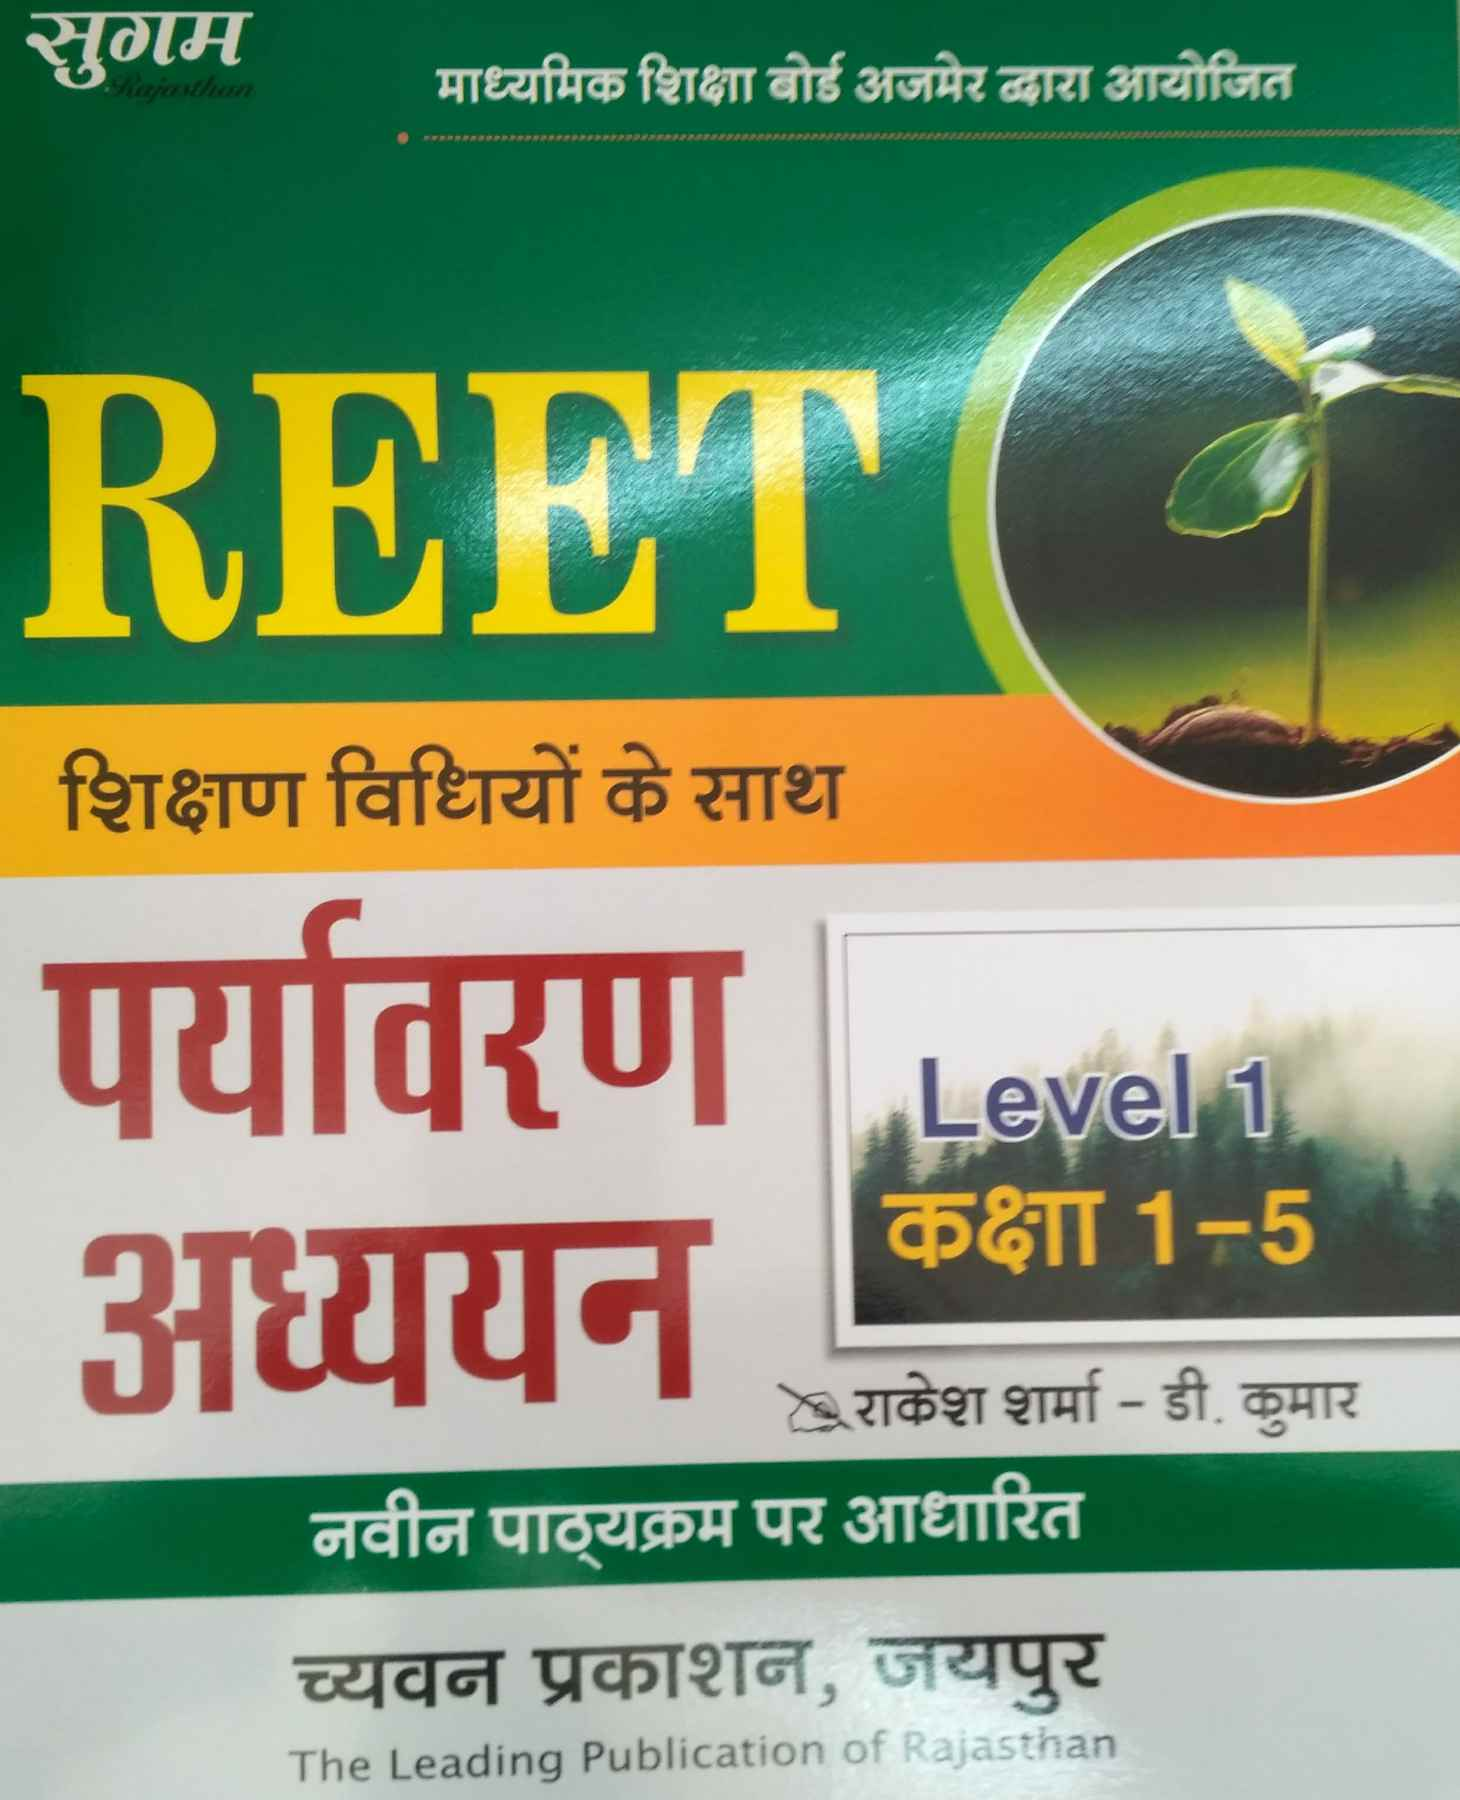 Best books for reet rajasthan eligibility examination for teachers chavyan reet level i teachi fandeluxe Image collections